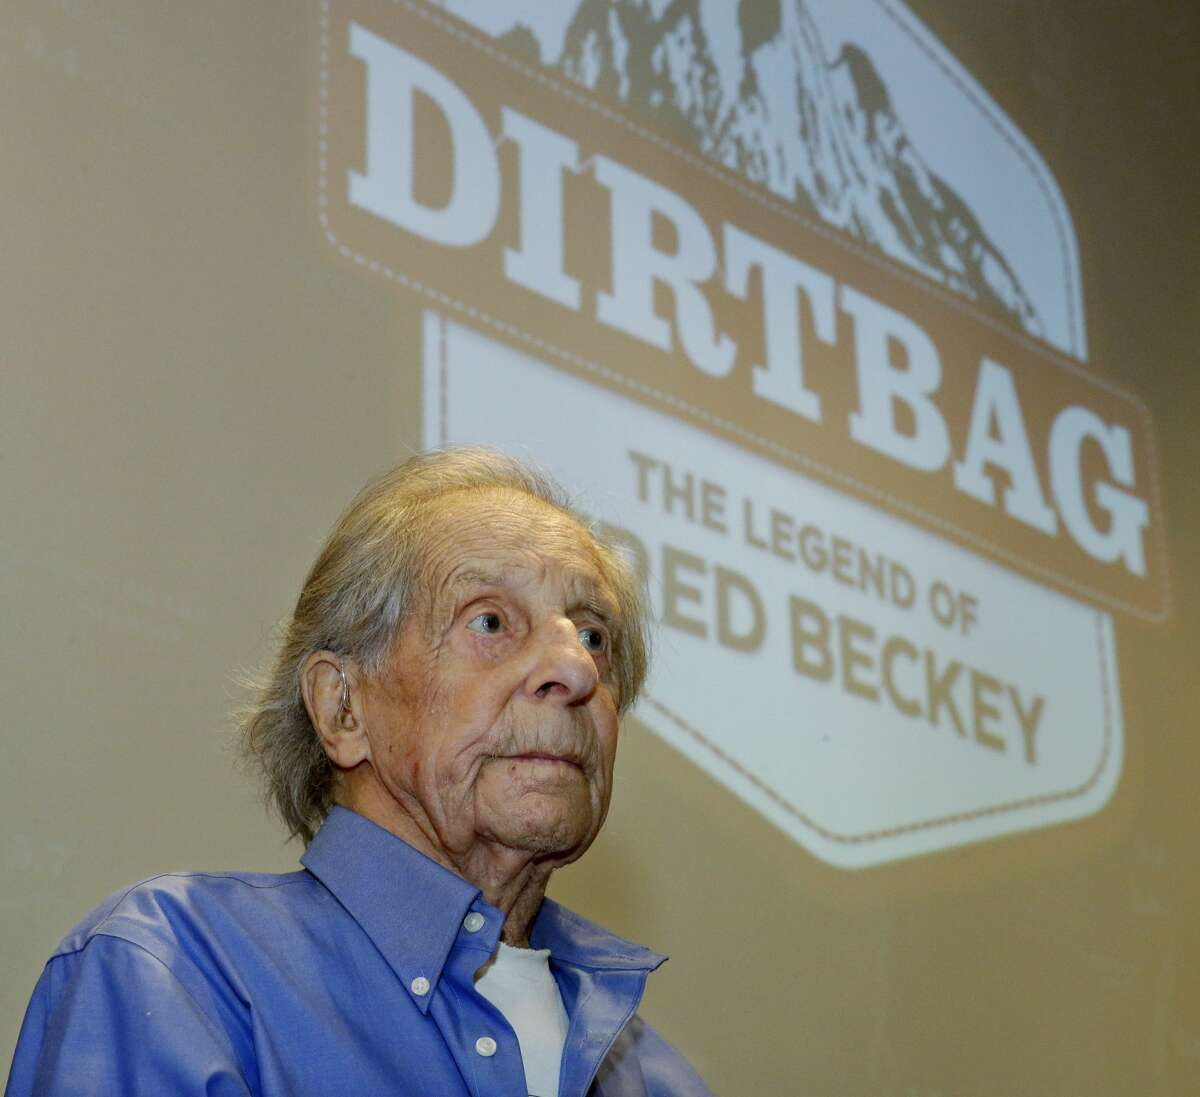 In this photo taken July 26, 2016 in Seattle, Fred Beckey, the legendary mountain climber who has bagged more first ascents than any other mountaineer and wrote the definitive guidebooks to a major North American mountain range, sits in front of a screen bearing the logo for